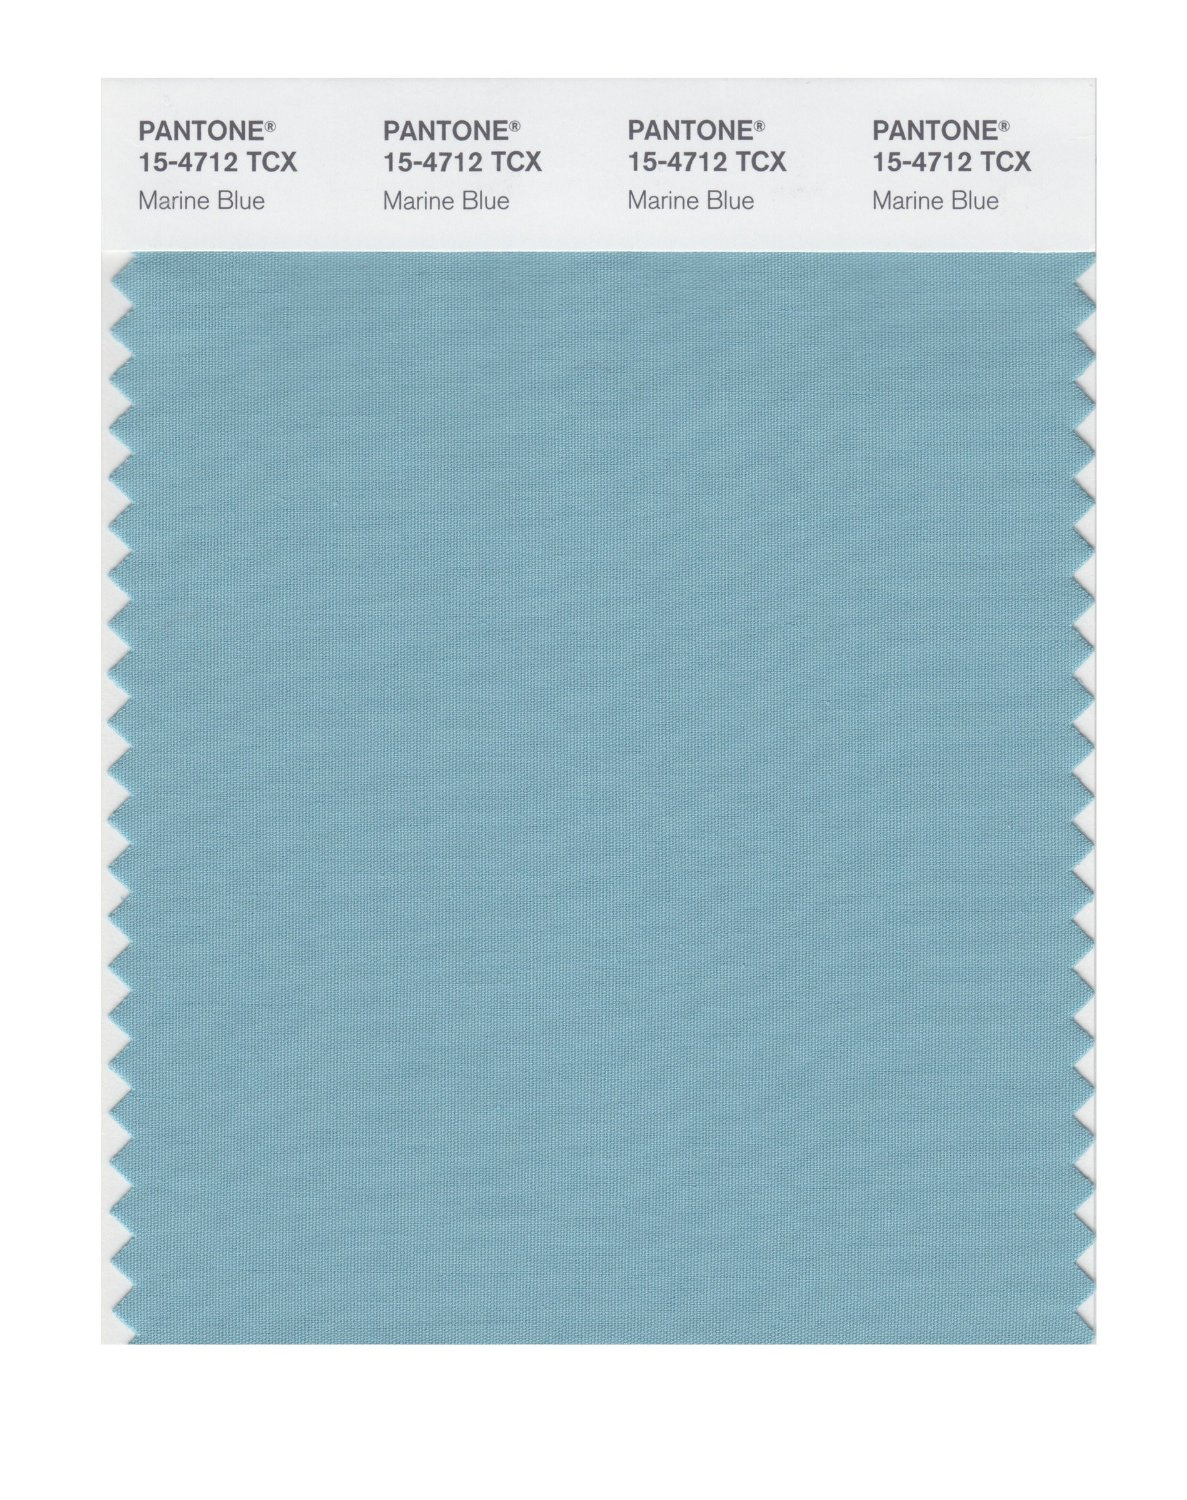 Pantone Smart Swatch 15-4712 Marine Blue